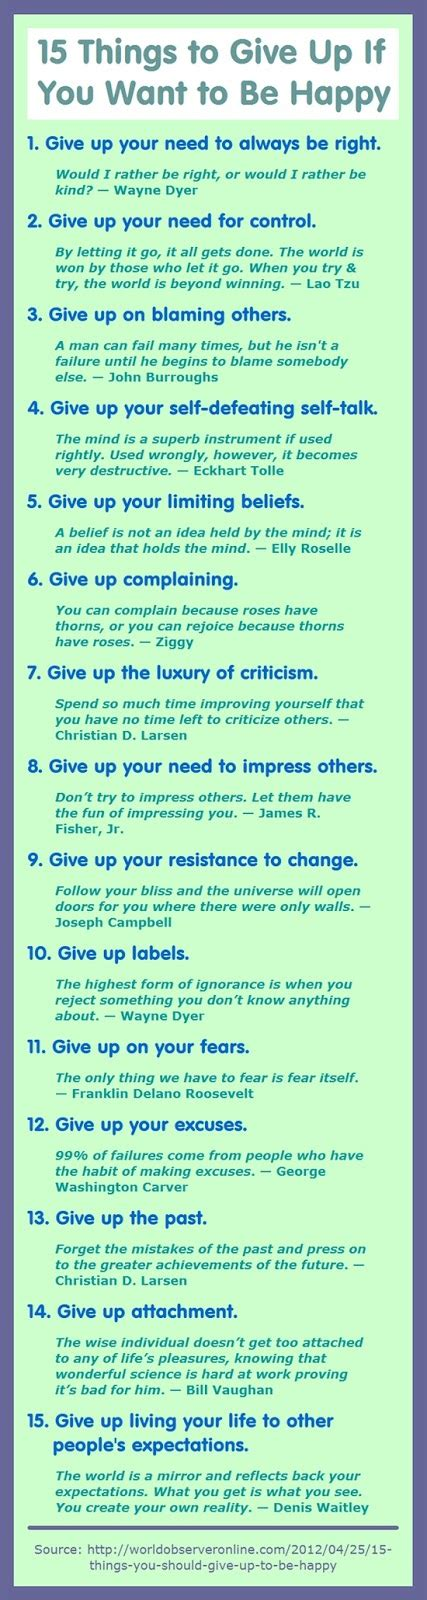 15 things you need to give up if you want to be happy